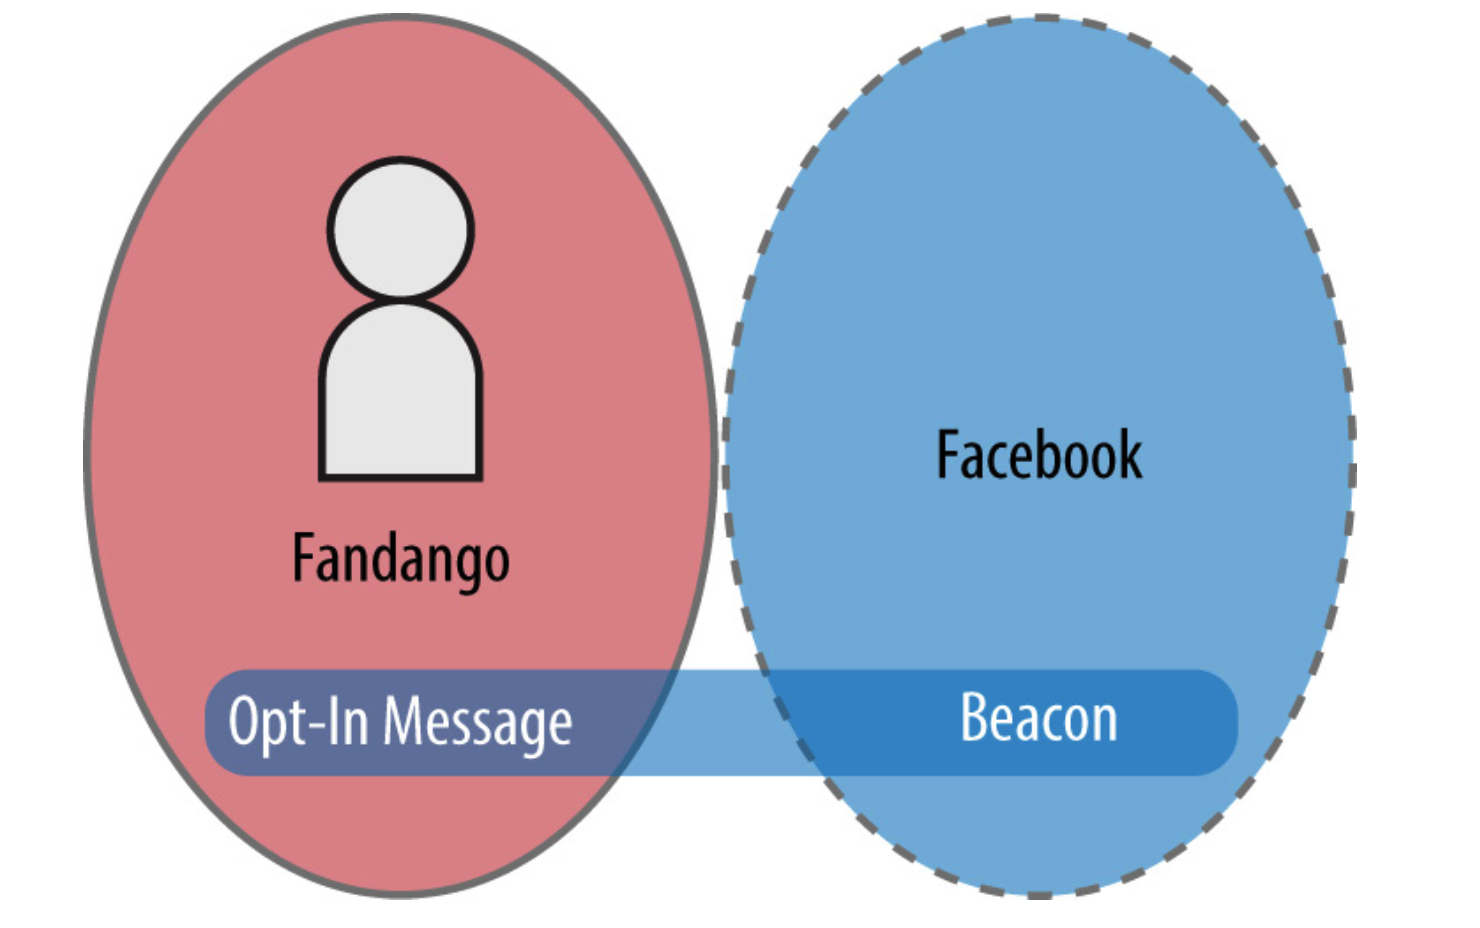 Graphic showing the Fandango site and Facebook as non-overlapping circles that users perceive as separate places.